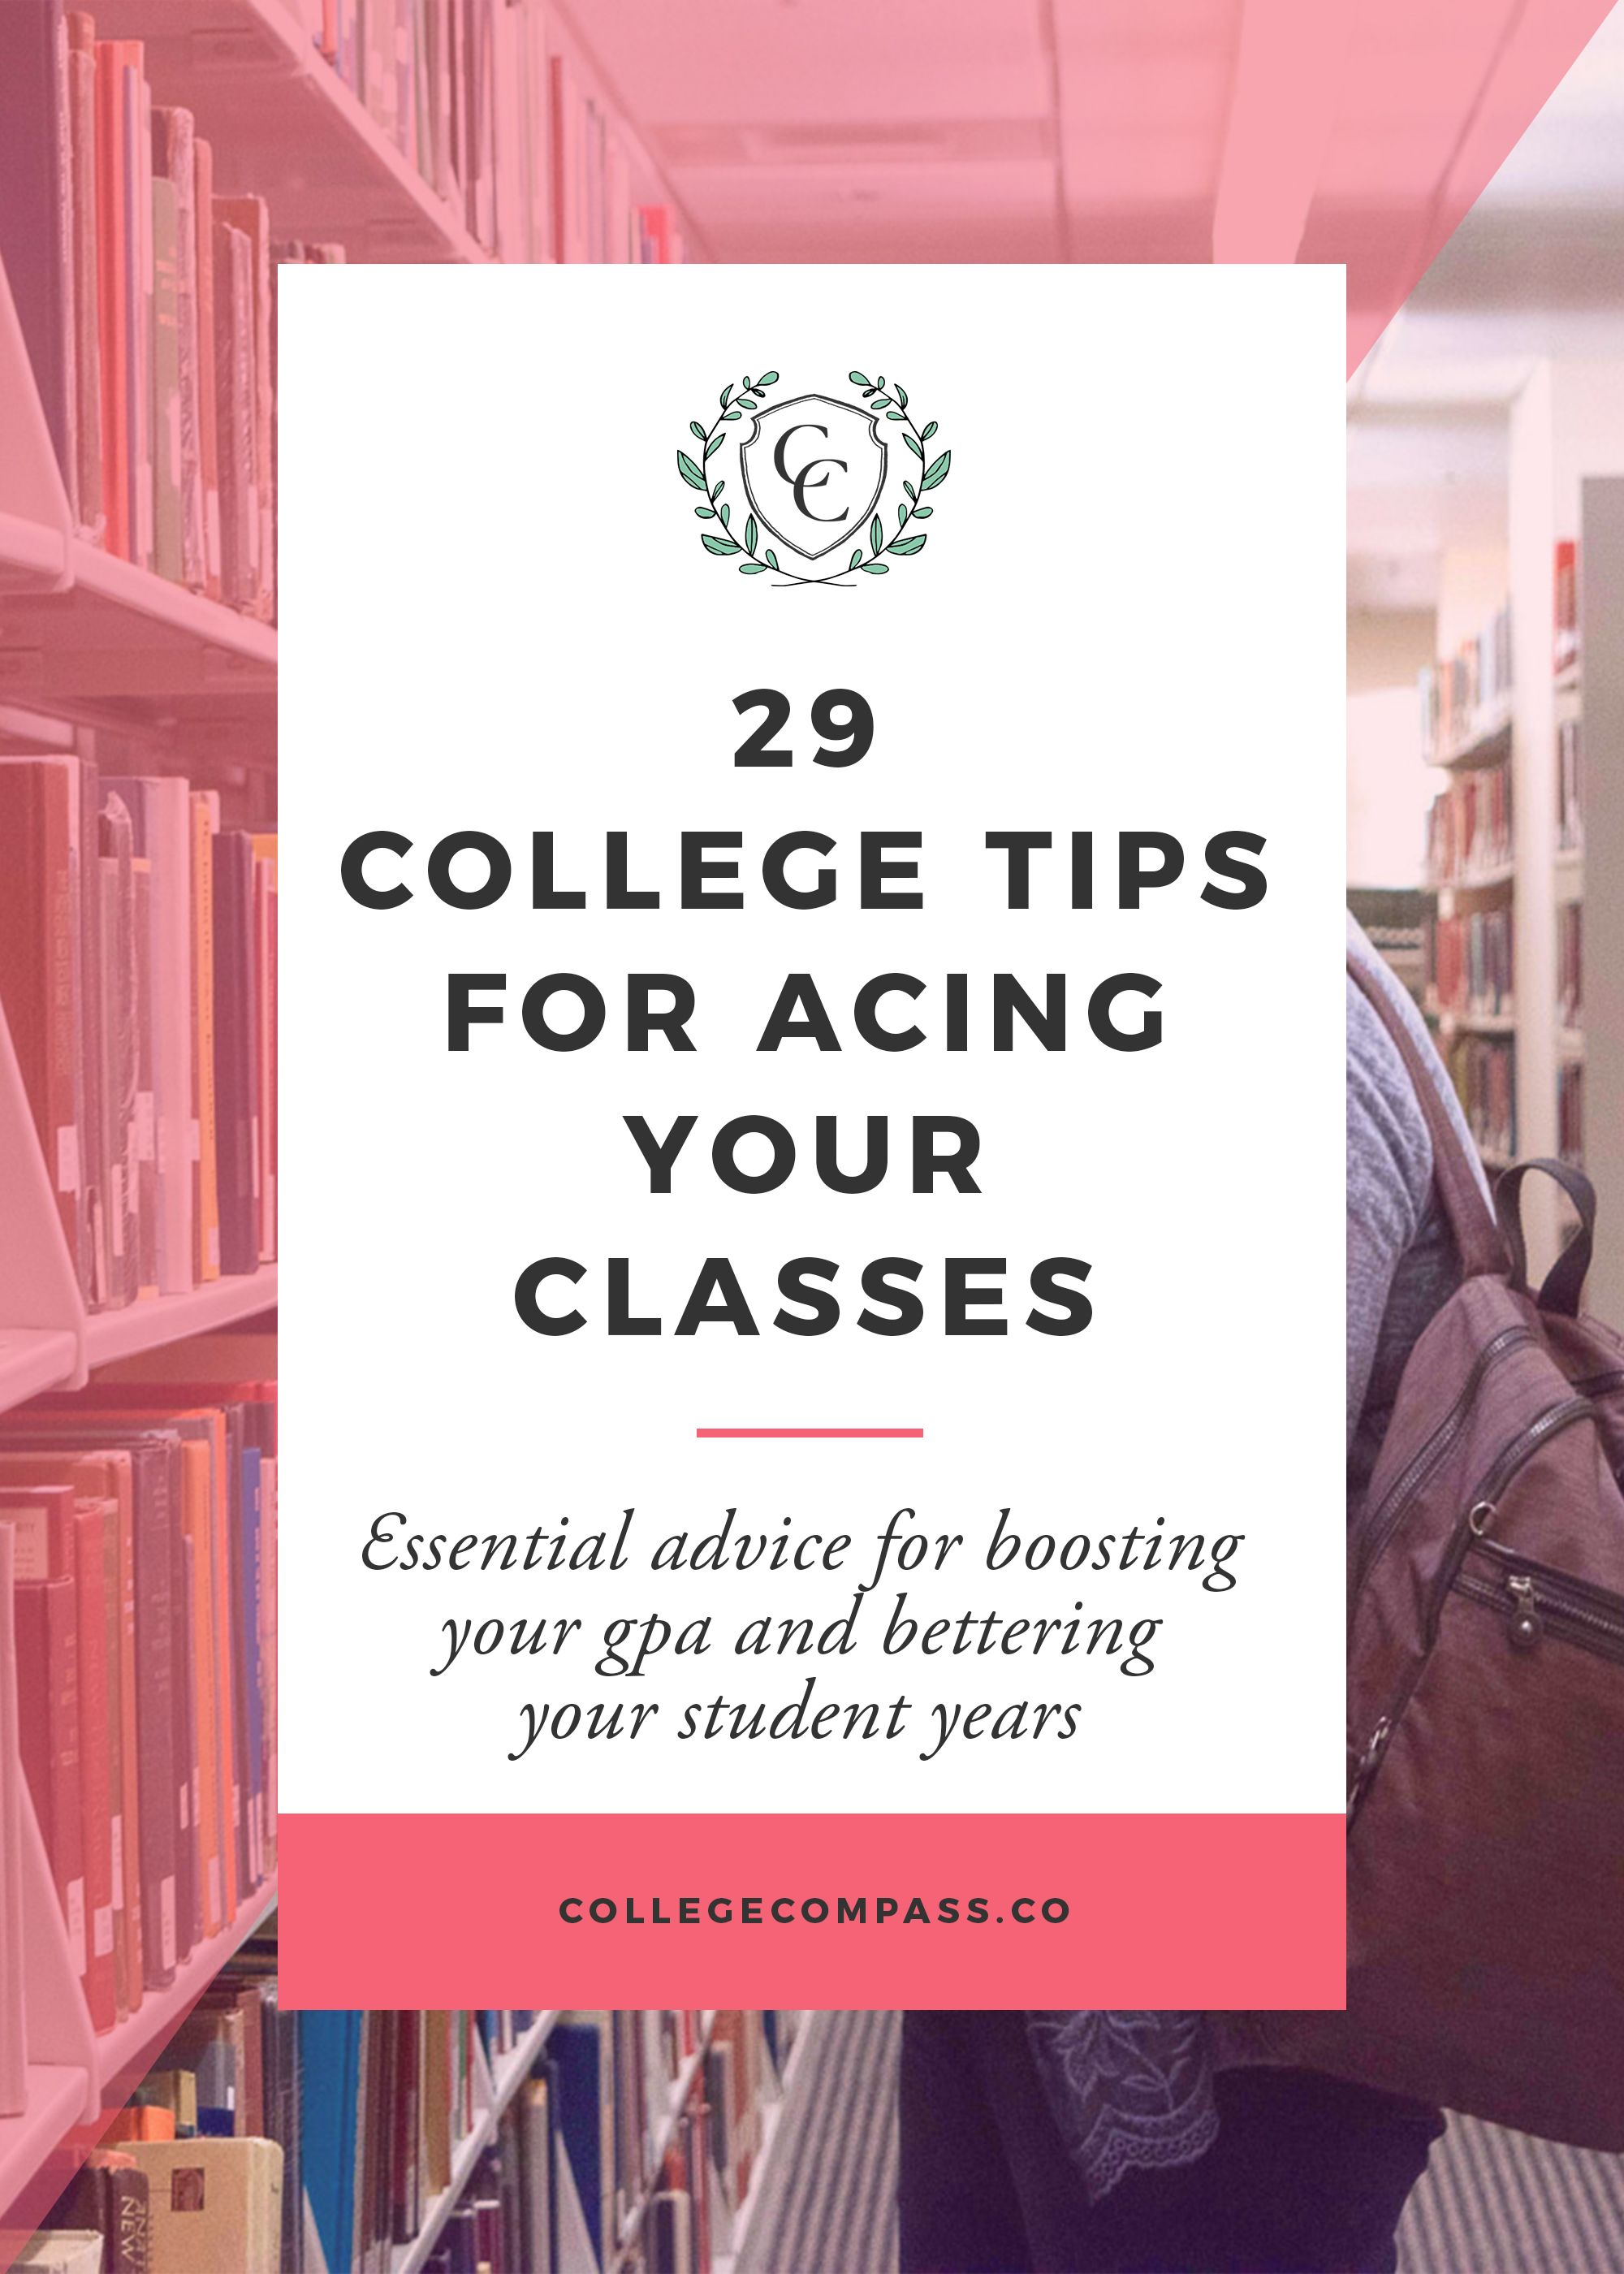 29 College Tips For Acing Your Classes